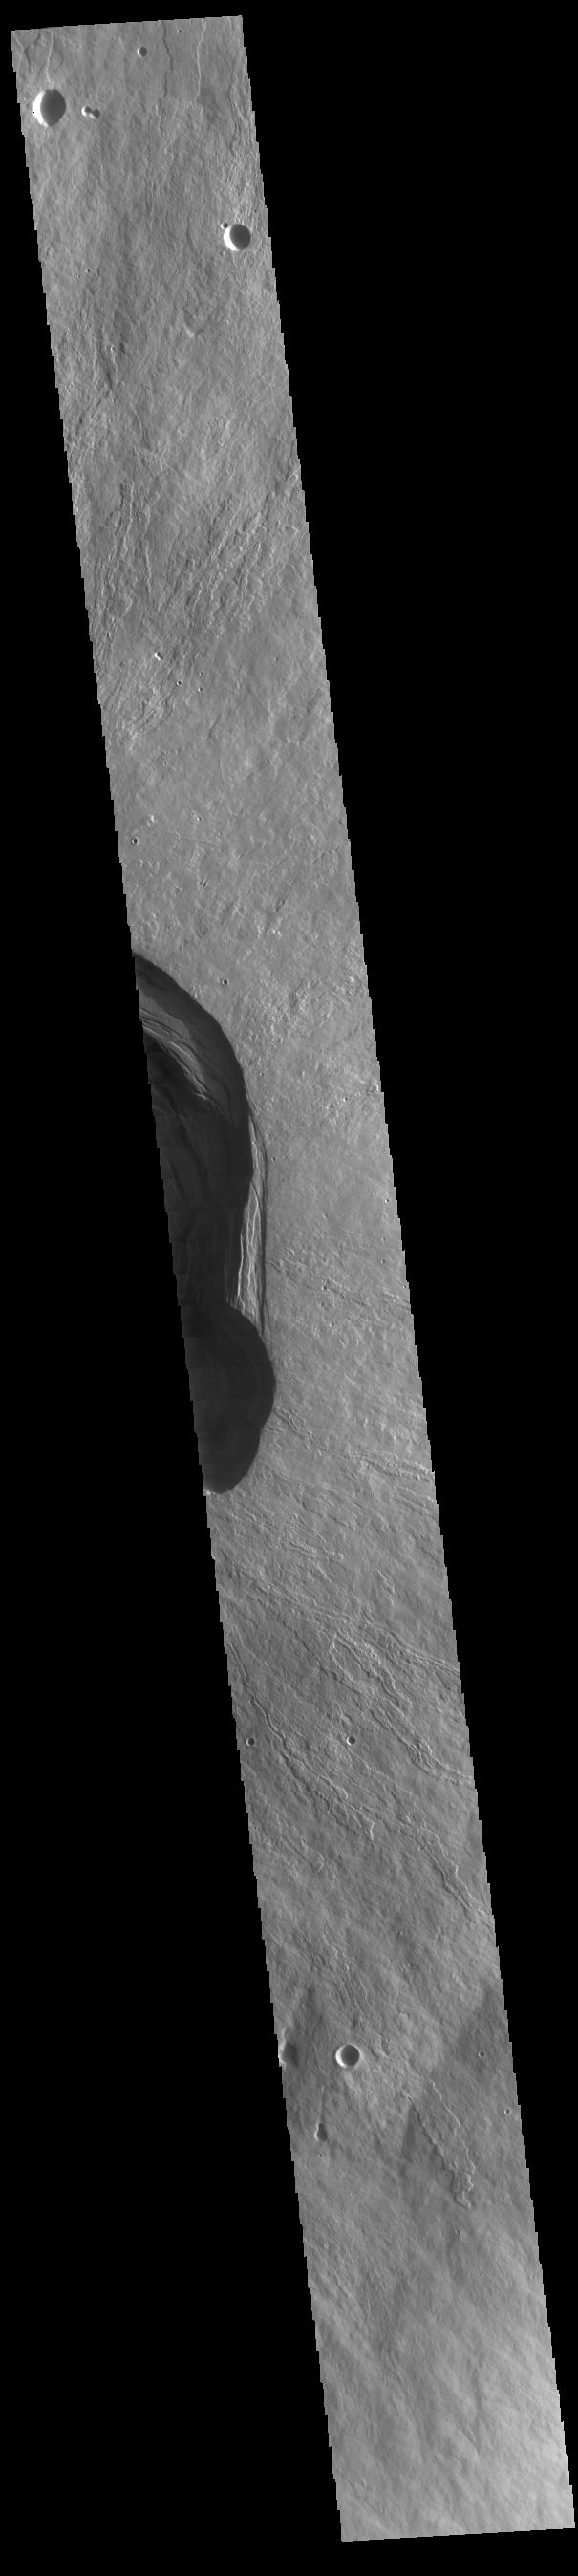 This image from NASAs Mars Odyssey shows the summit of Ascraeus Mons, one of the three large Tharsis region volcanoes.